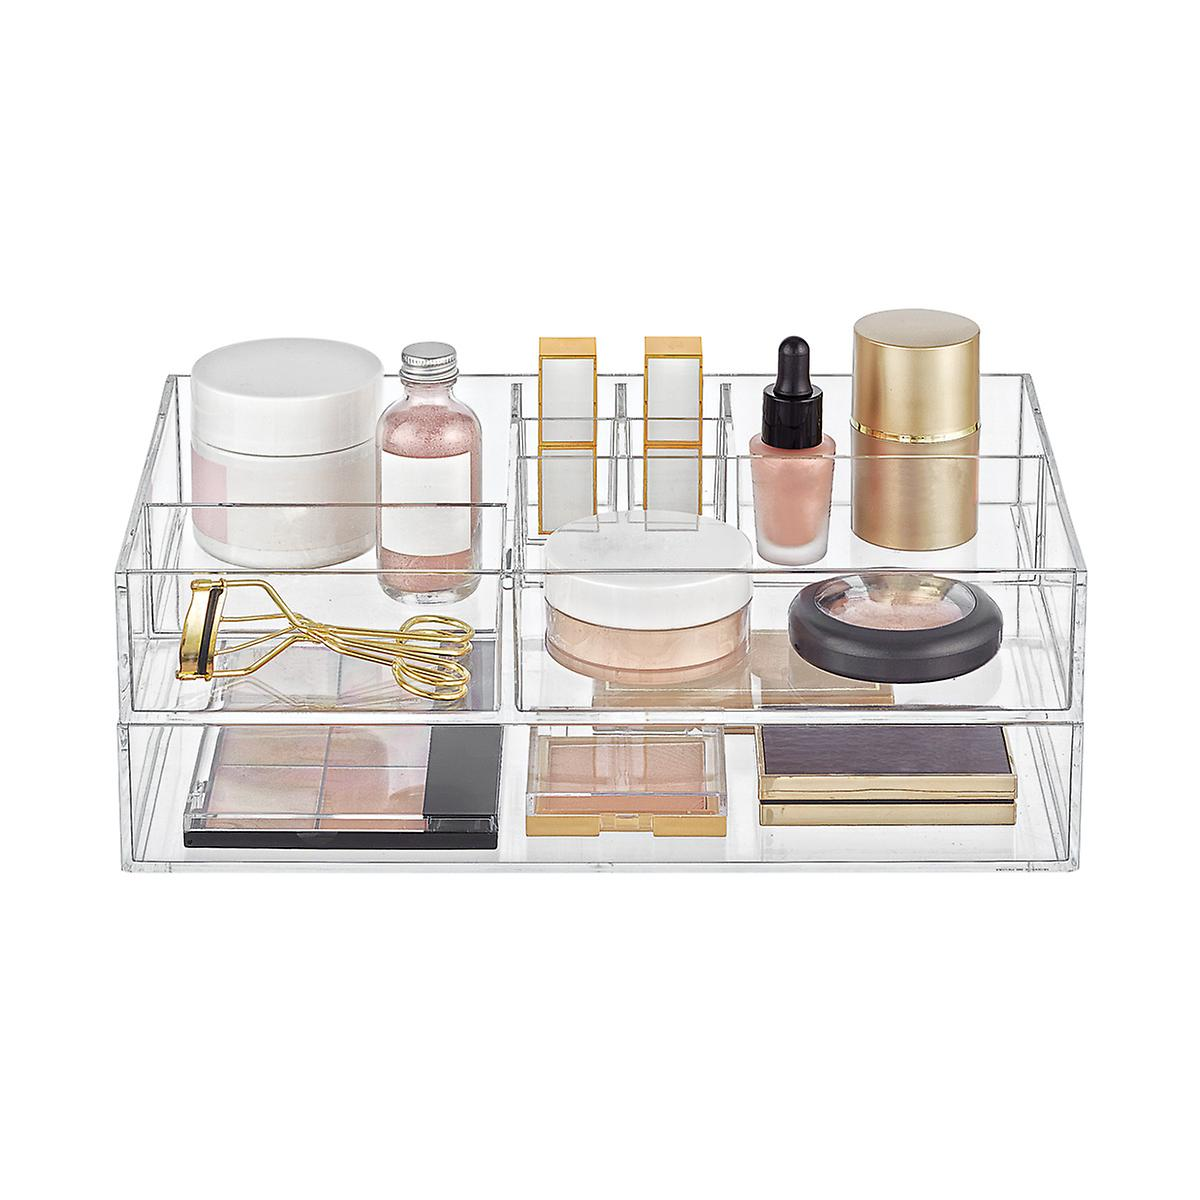 Clear Acrylic Makeup Skin Care